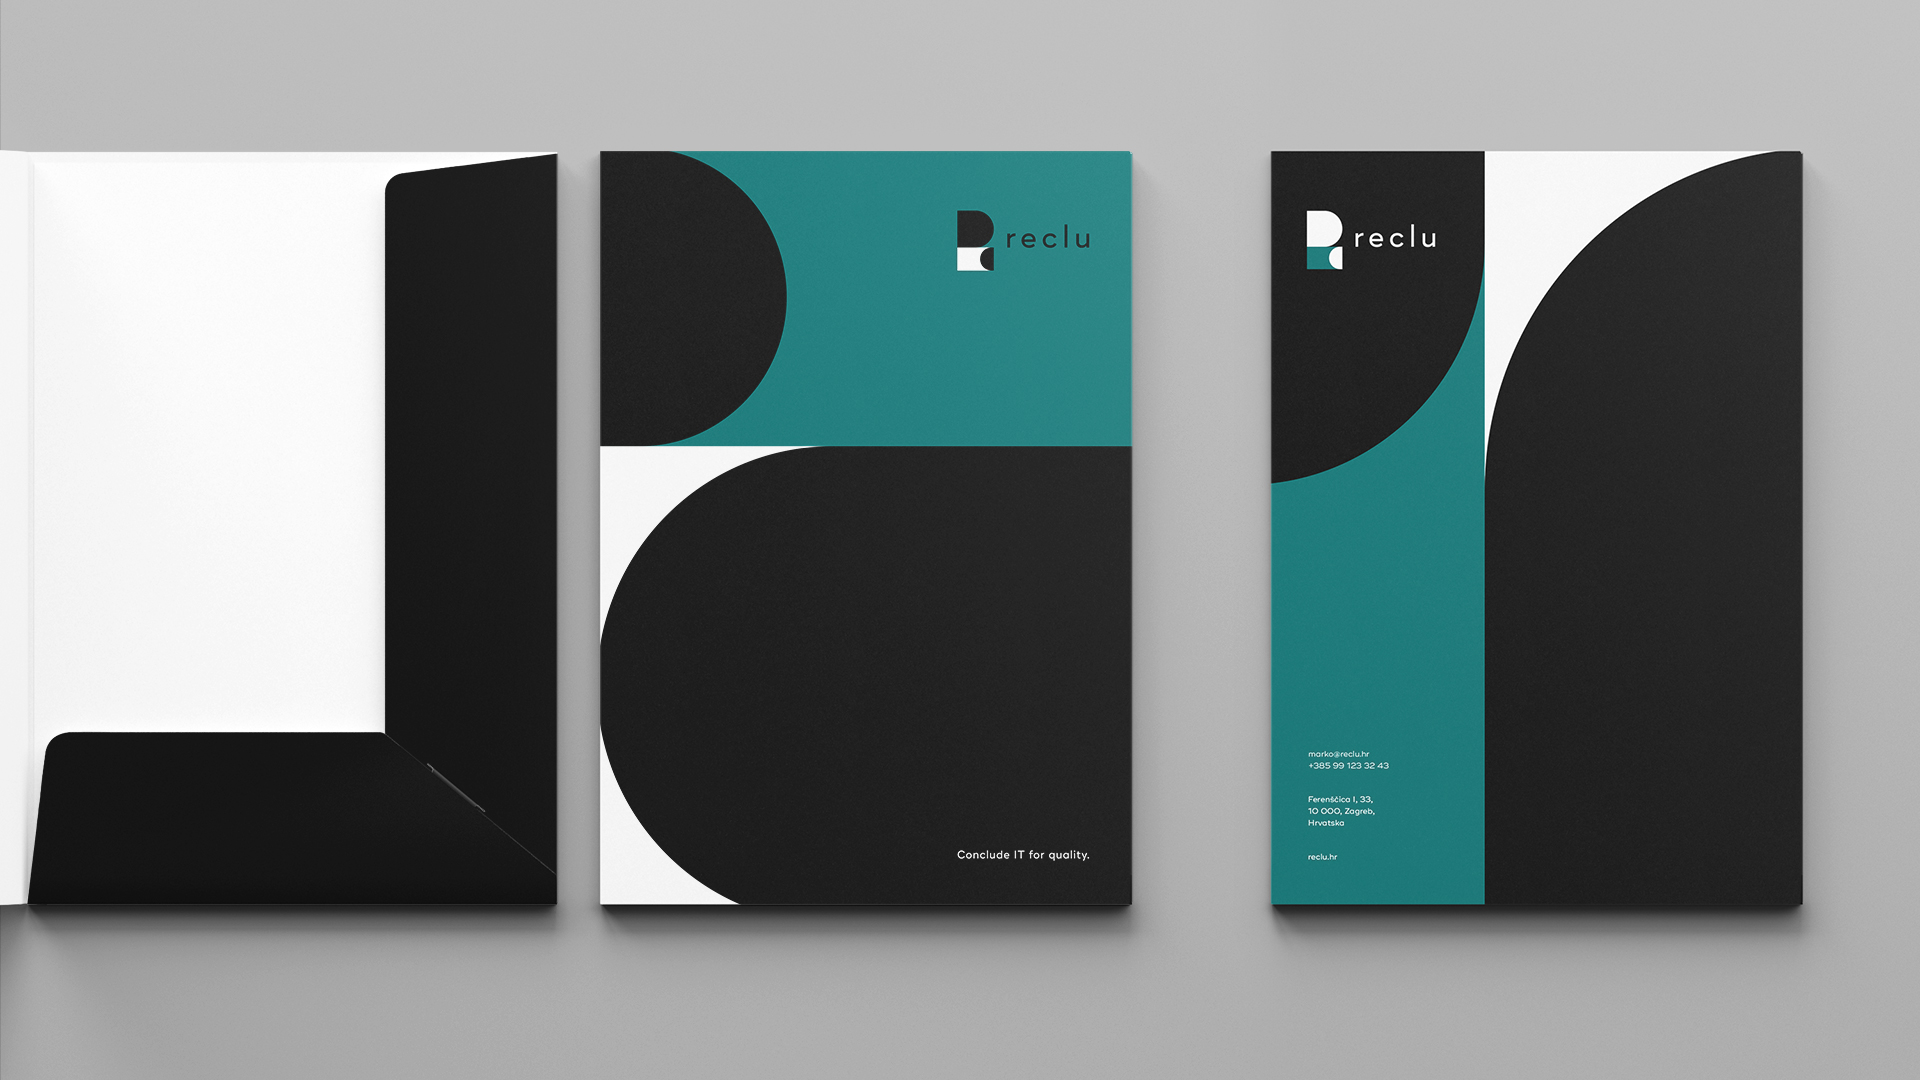 Reclu-Visual-Identity-by-Emtisquare-8